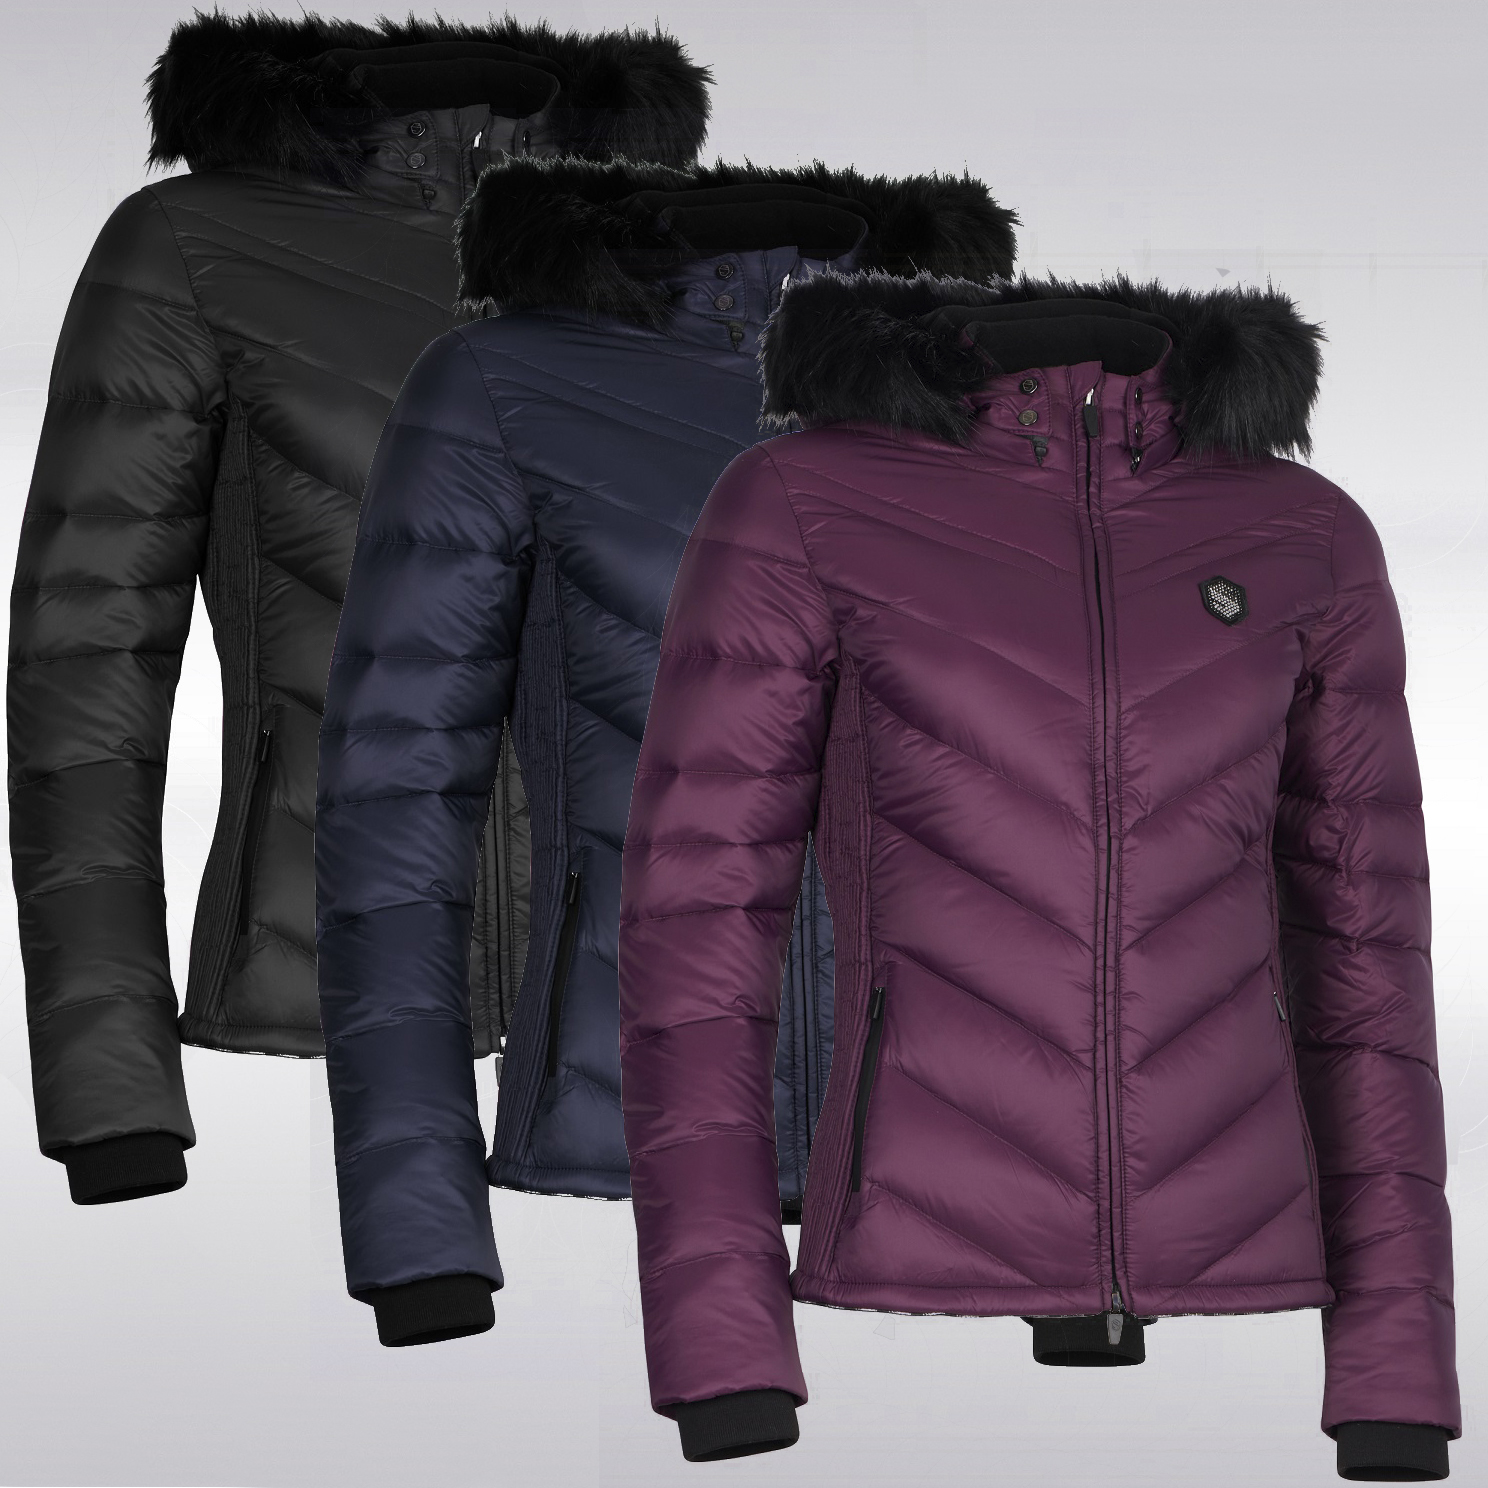 c8b90c8bacd Samshield Womens Down Jacket Courchevel - Royal Equestrian